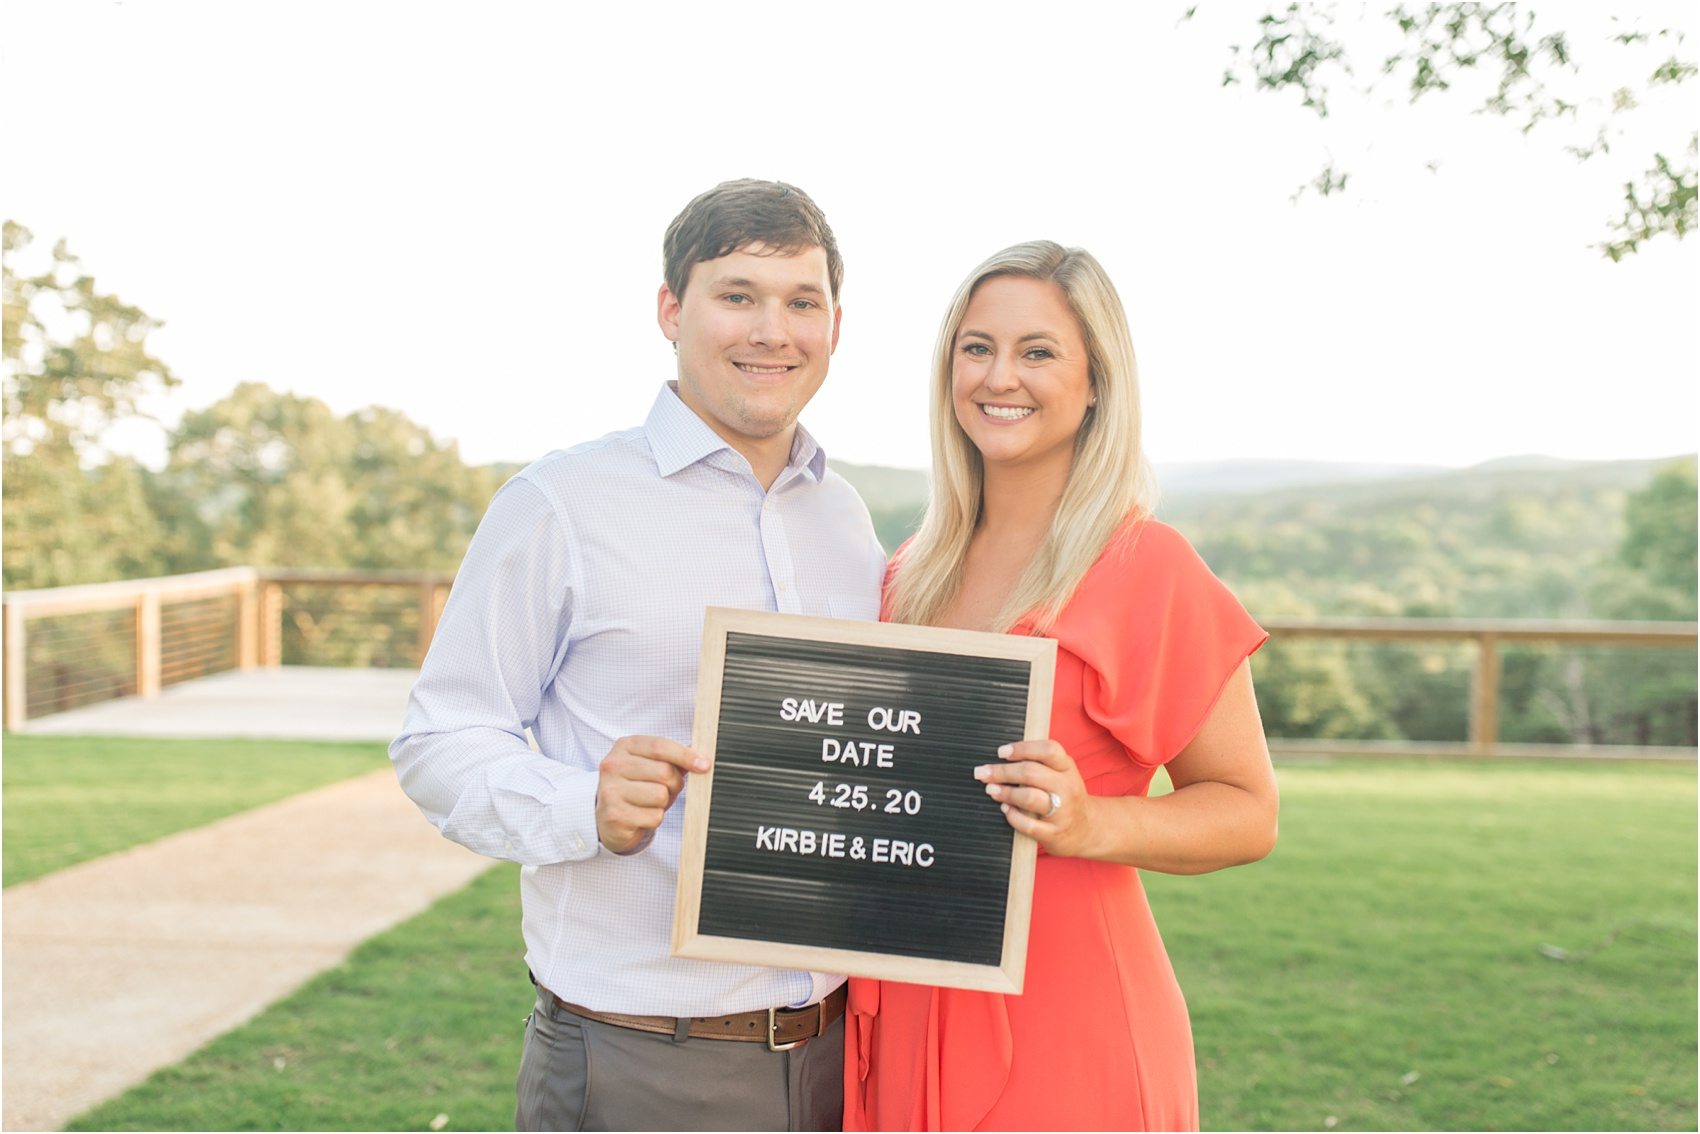 Savannah Eve Photography LLC- Settlemyer-Heyward Engagements- Blog-14.jpg